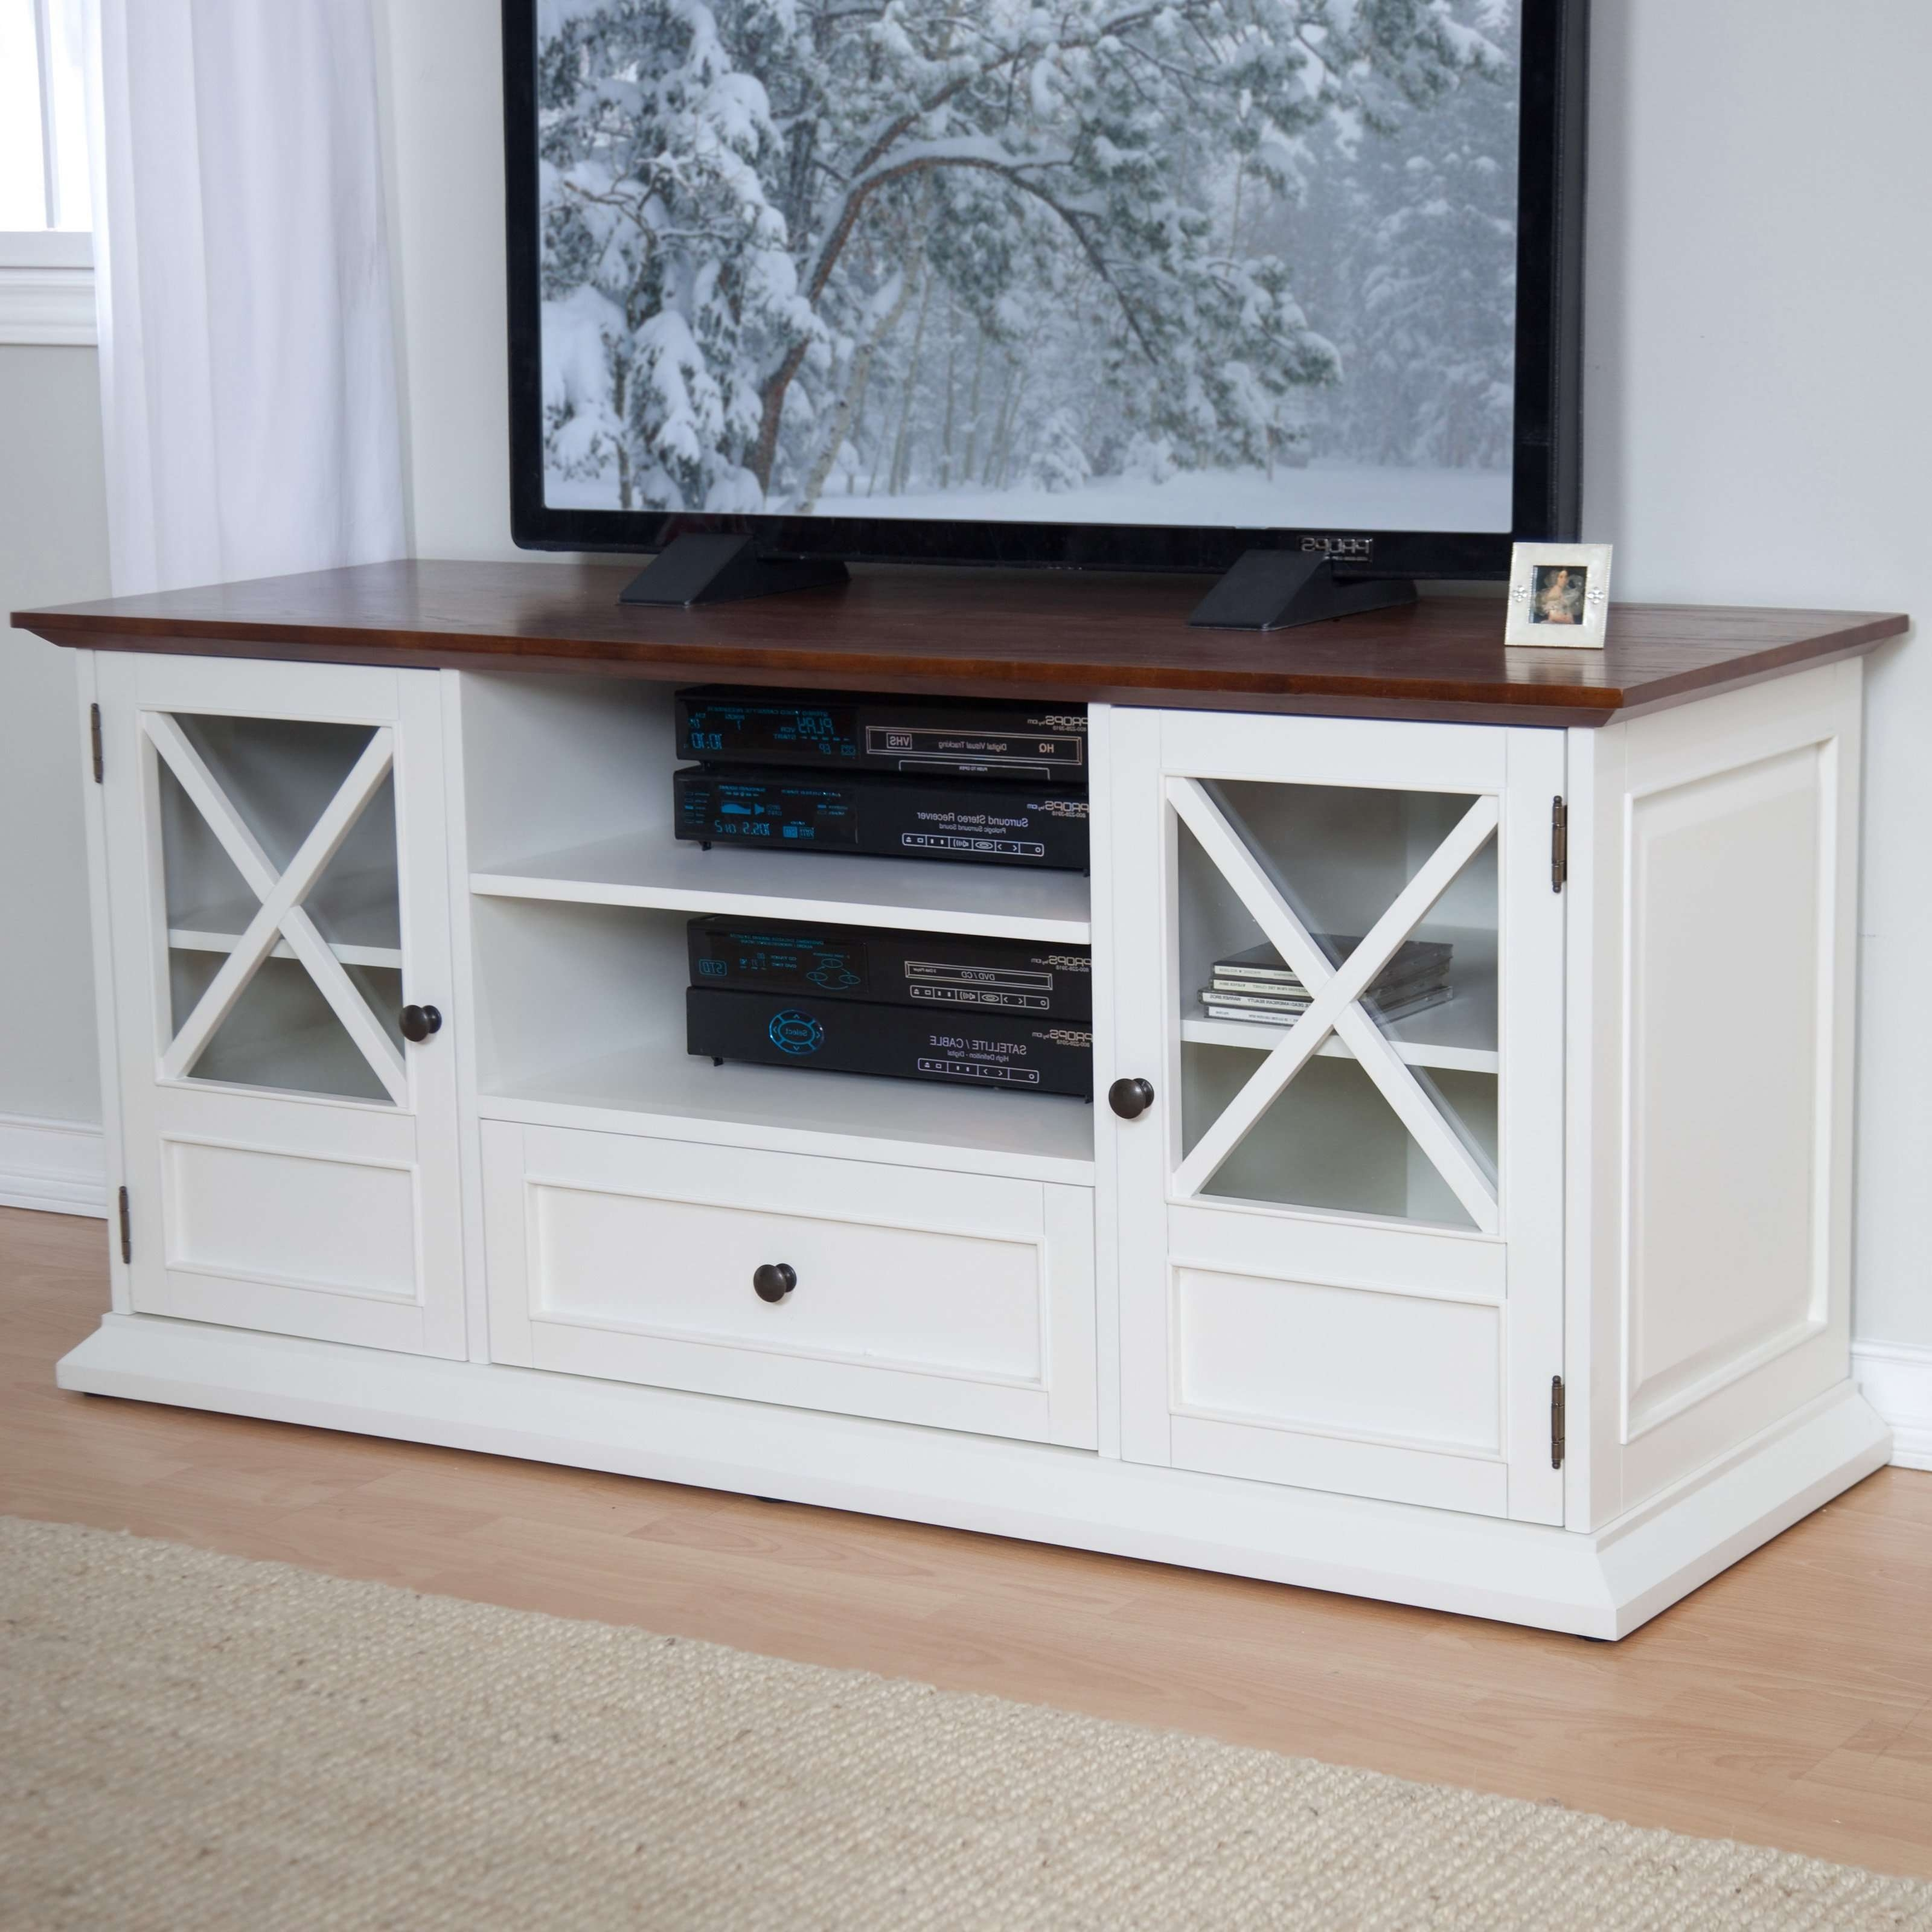 Belham Living Hampton Tv Stand – White/oak | Hayneedle With White Wood Tv Stands (View 2 of 15)